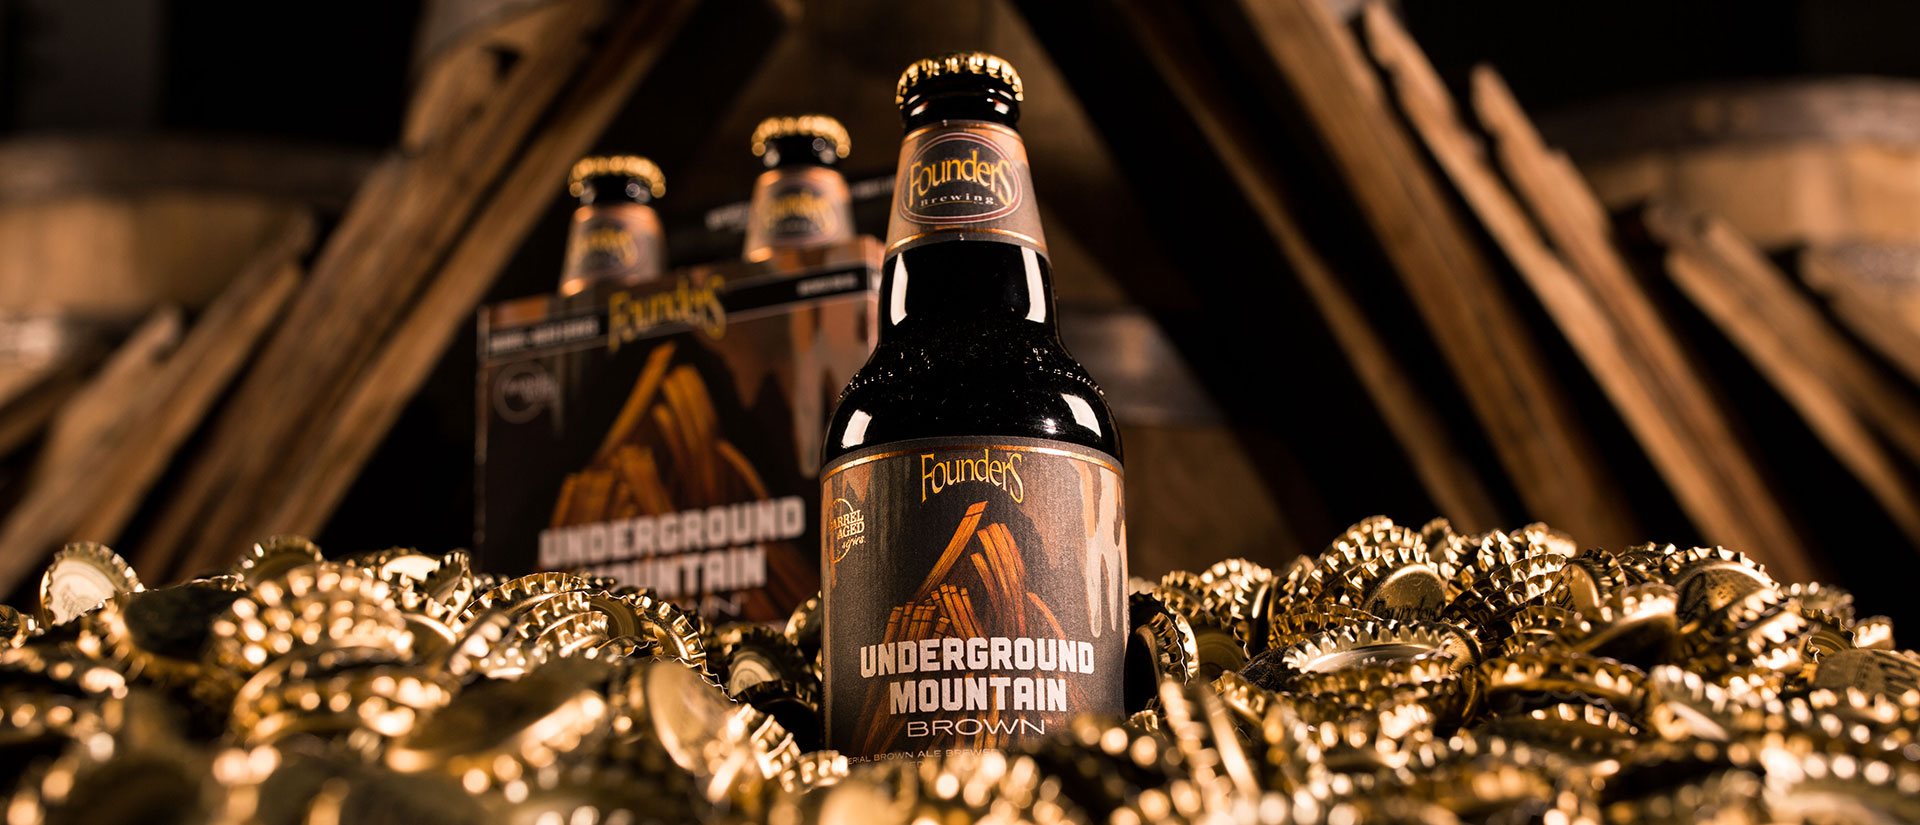 Underground Mountain Brown sitting in gold crowns